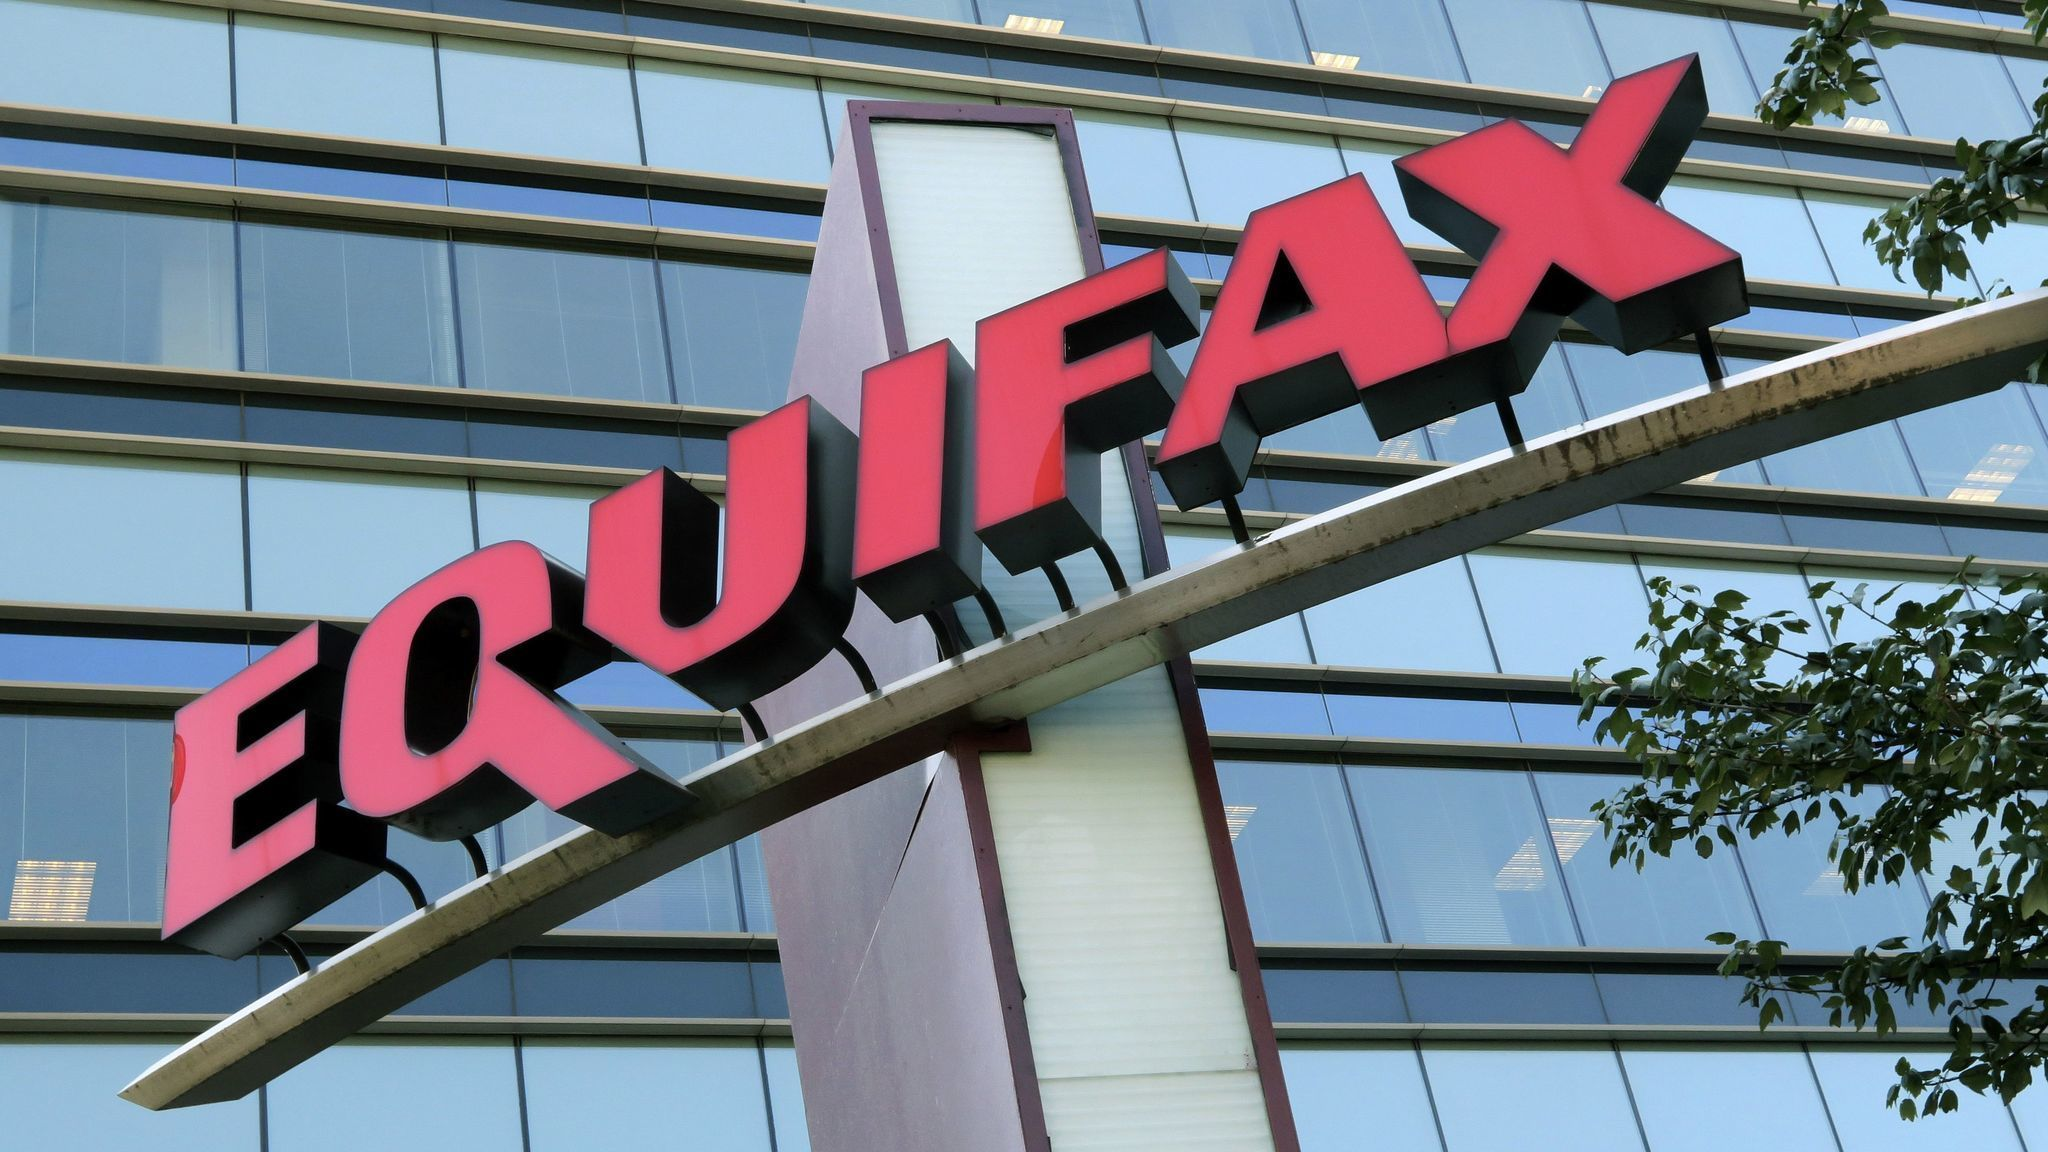 Lifelock offers to protect you from the Equifax breach — by selling you services provided by Equifax.